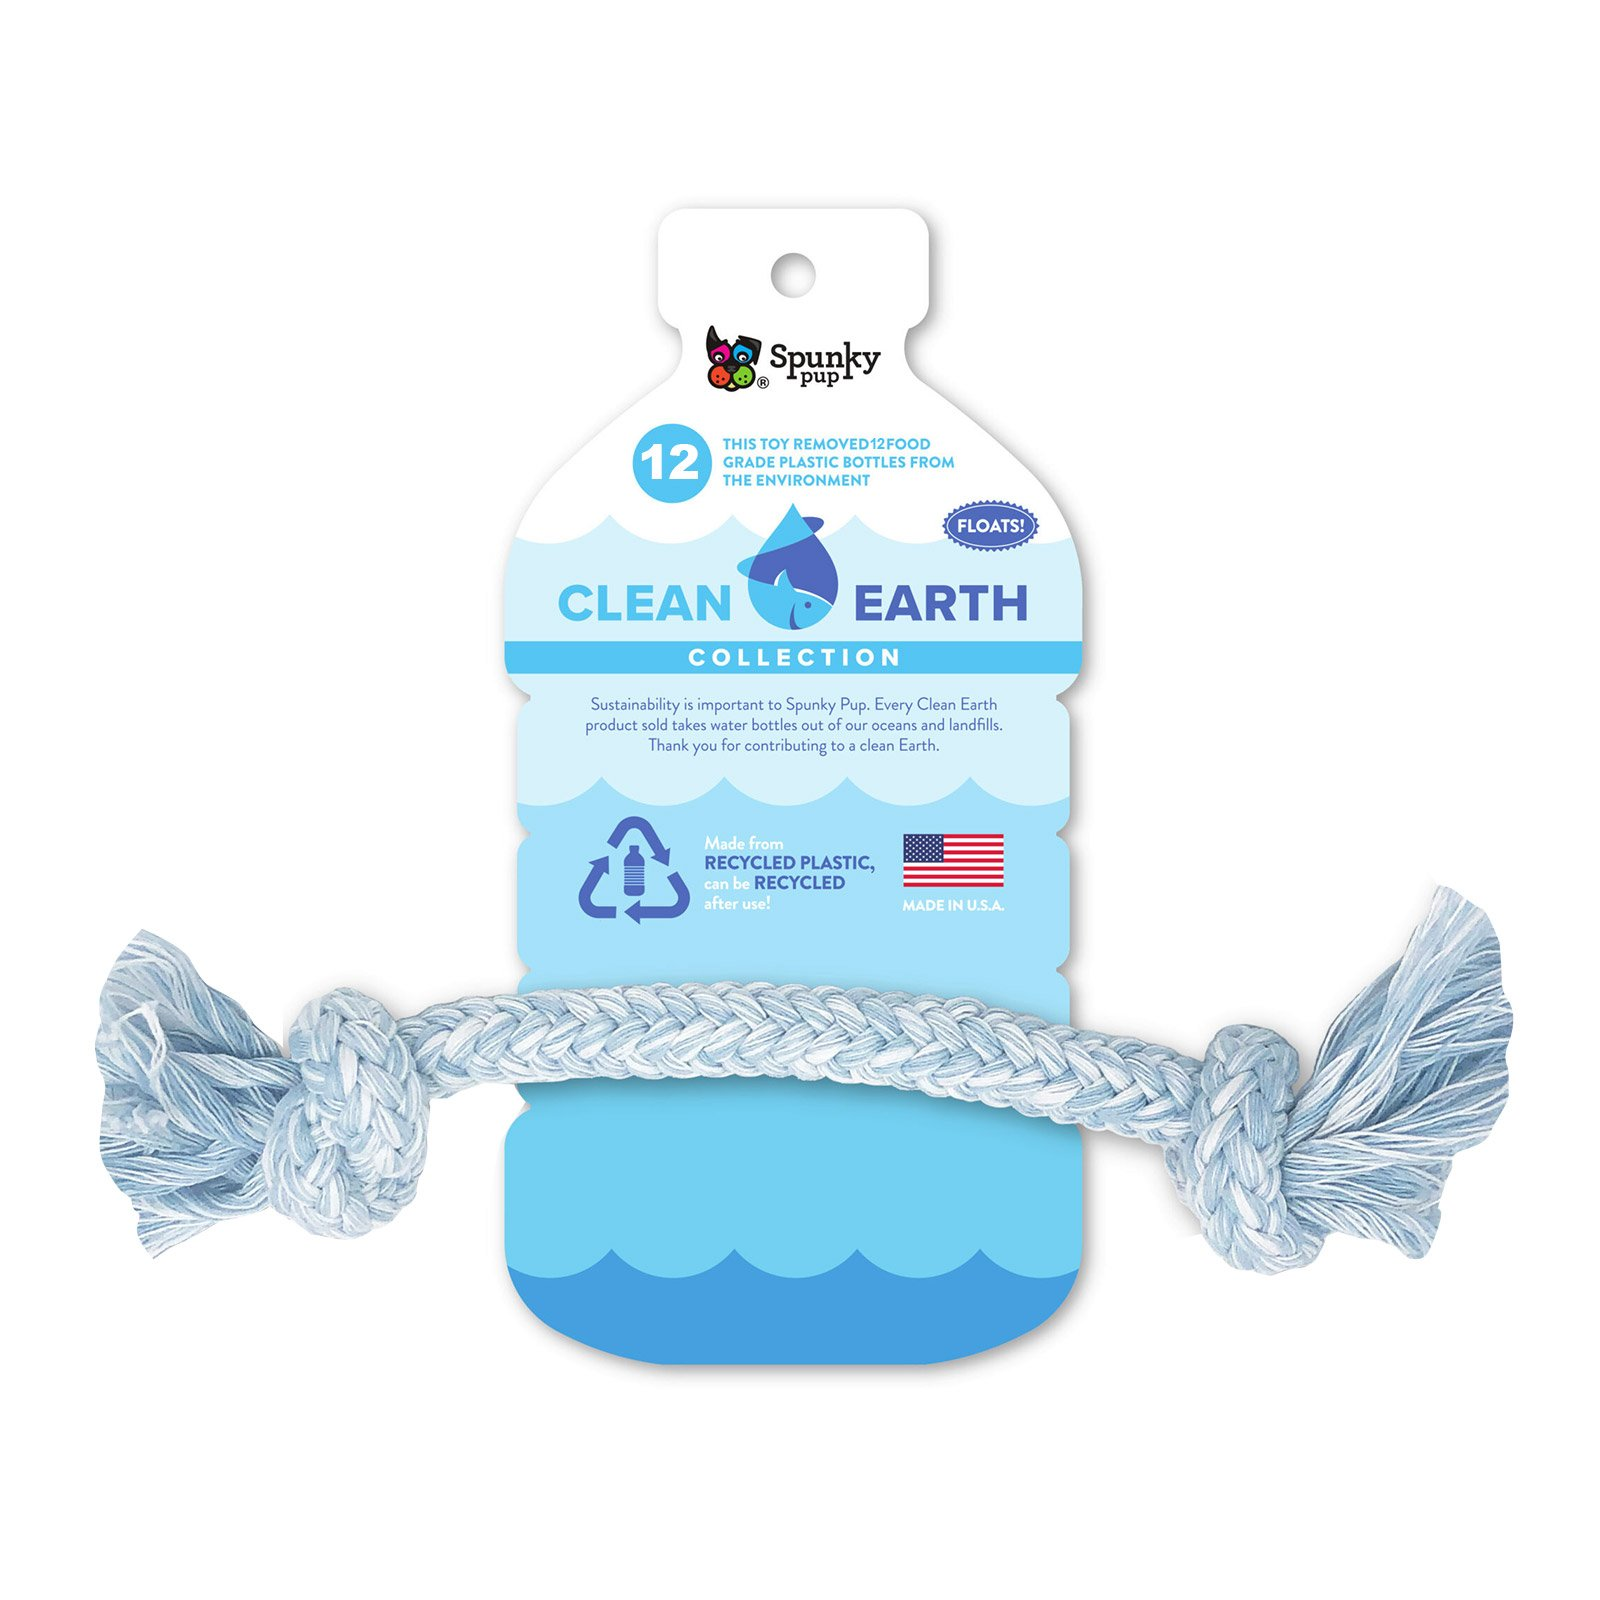 Spunky-pup-Clean-Earth-Recycled-Rope-Large_07132021_002133.jpg